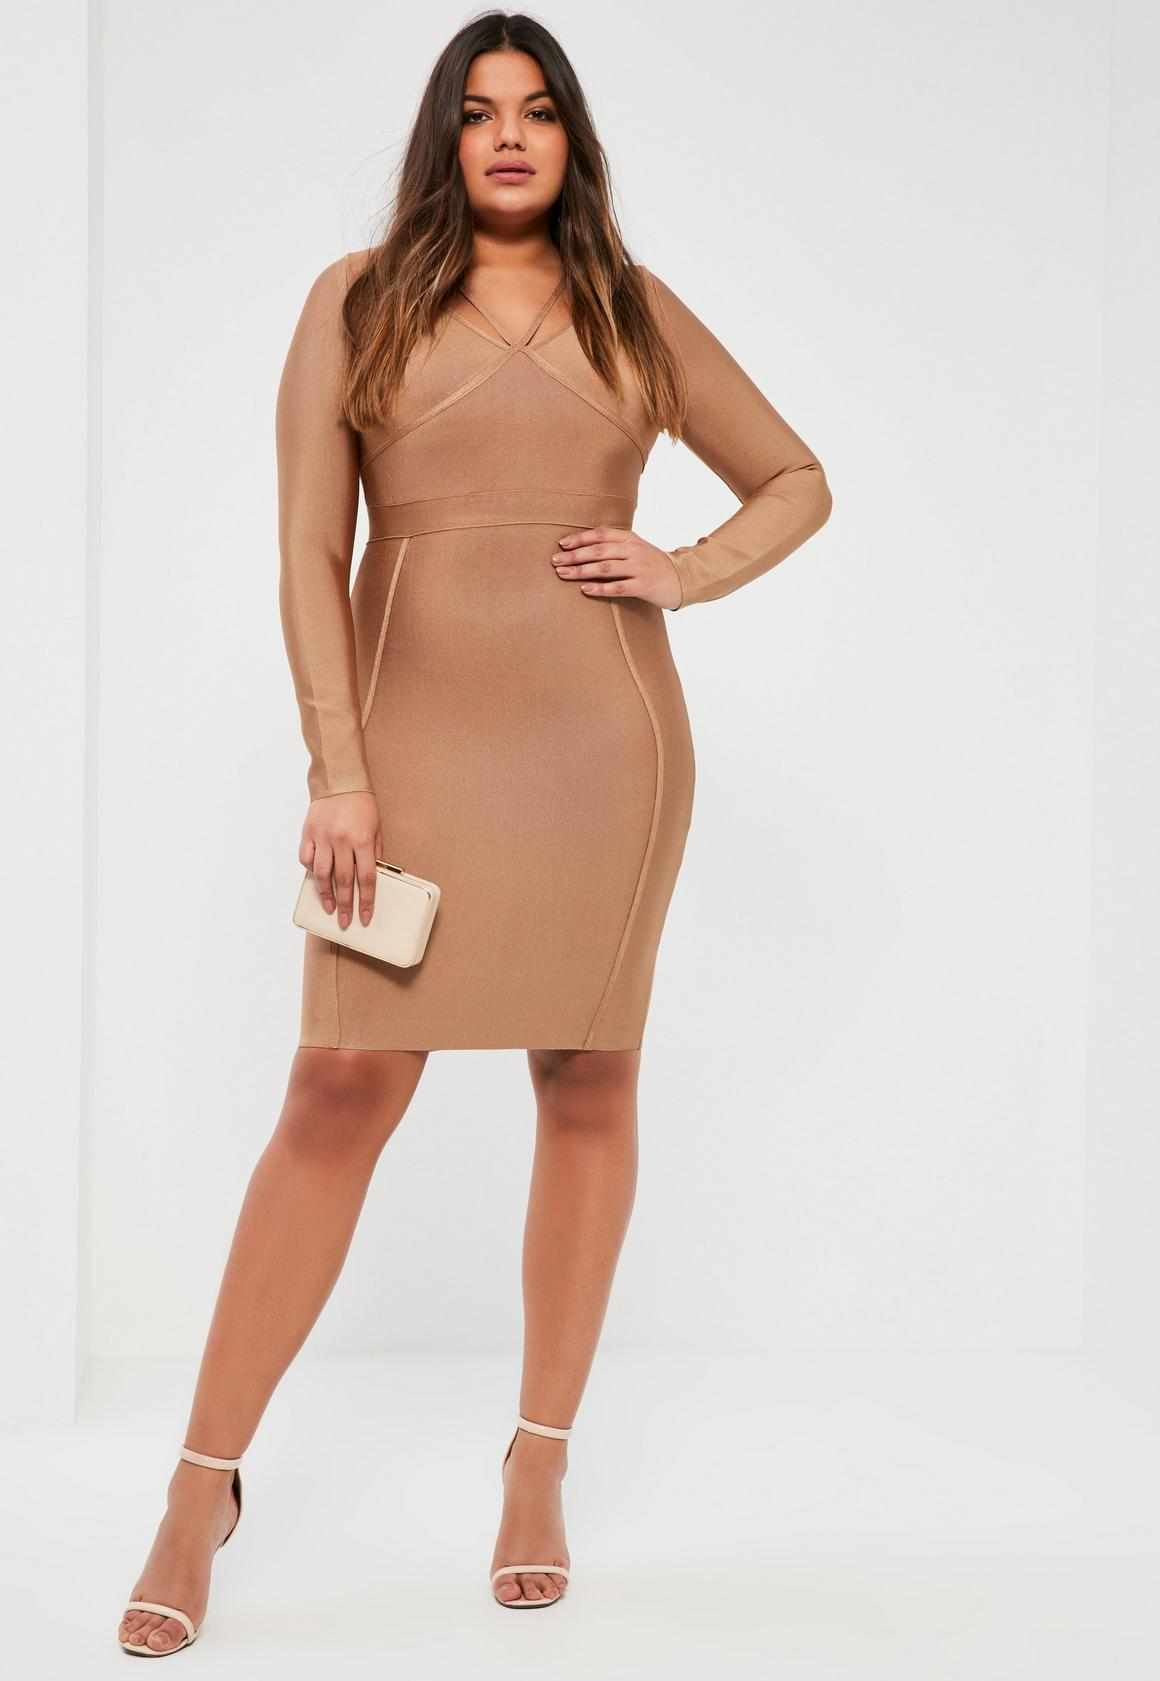 Plus Size Camel Harness Strap Bandage Bodycon Dress Missguided